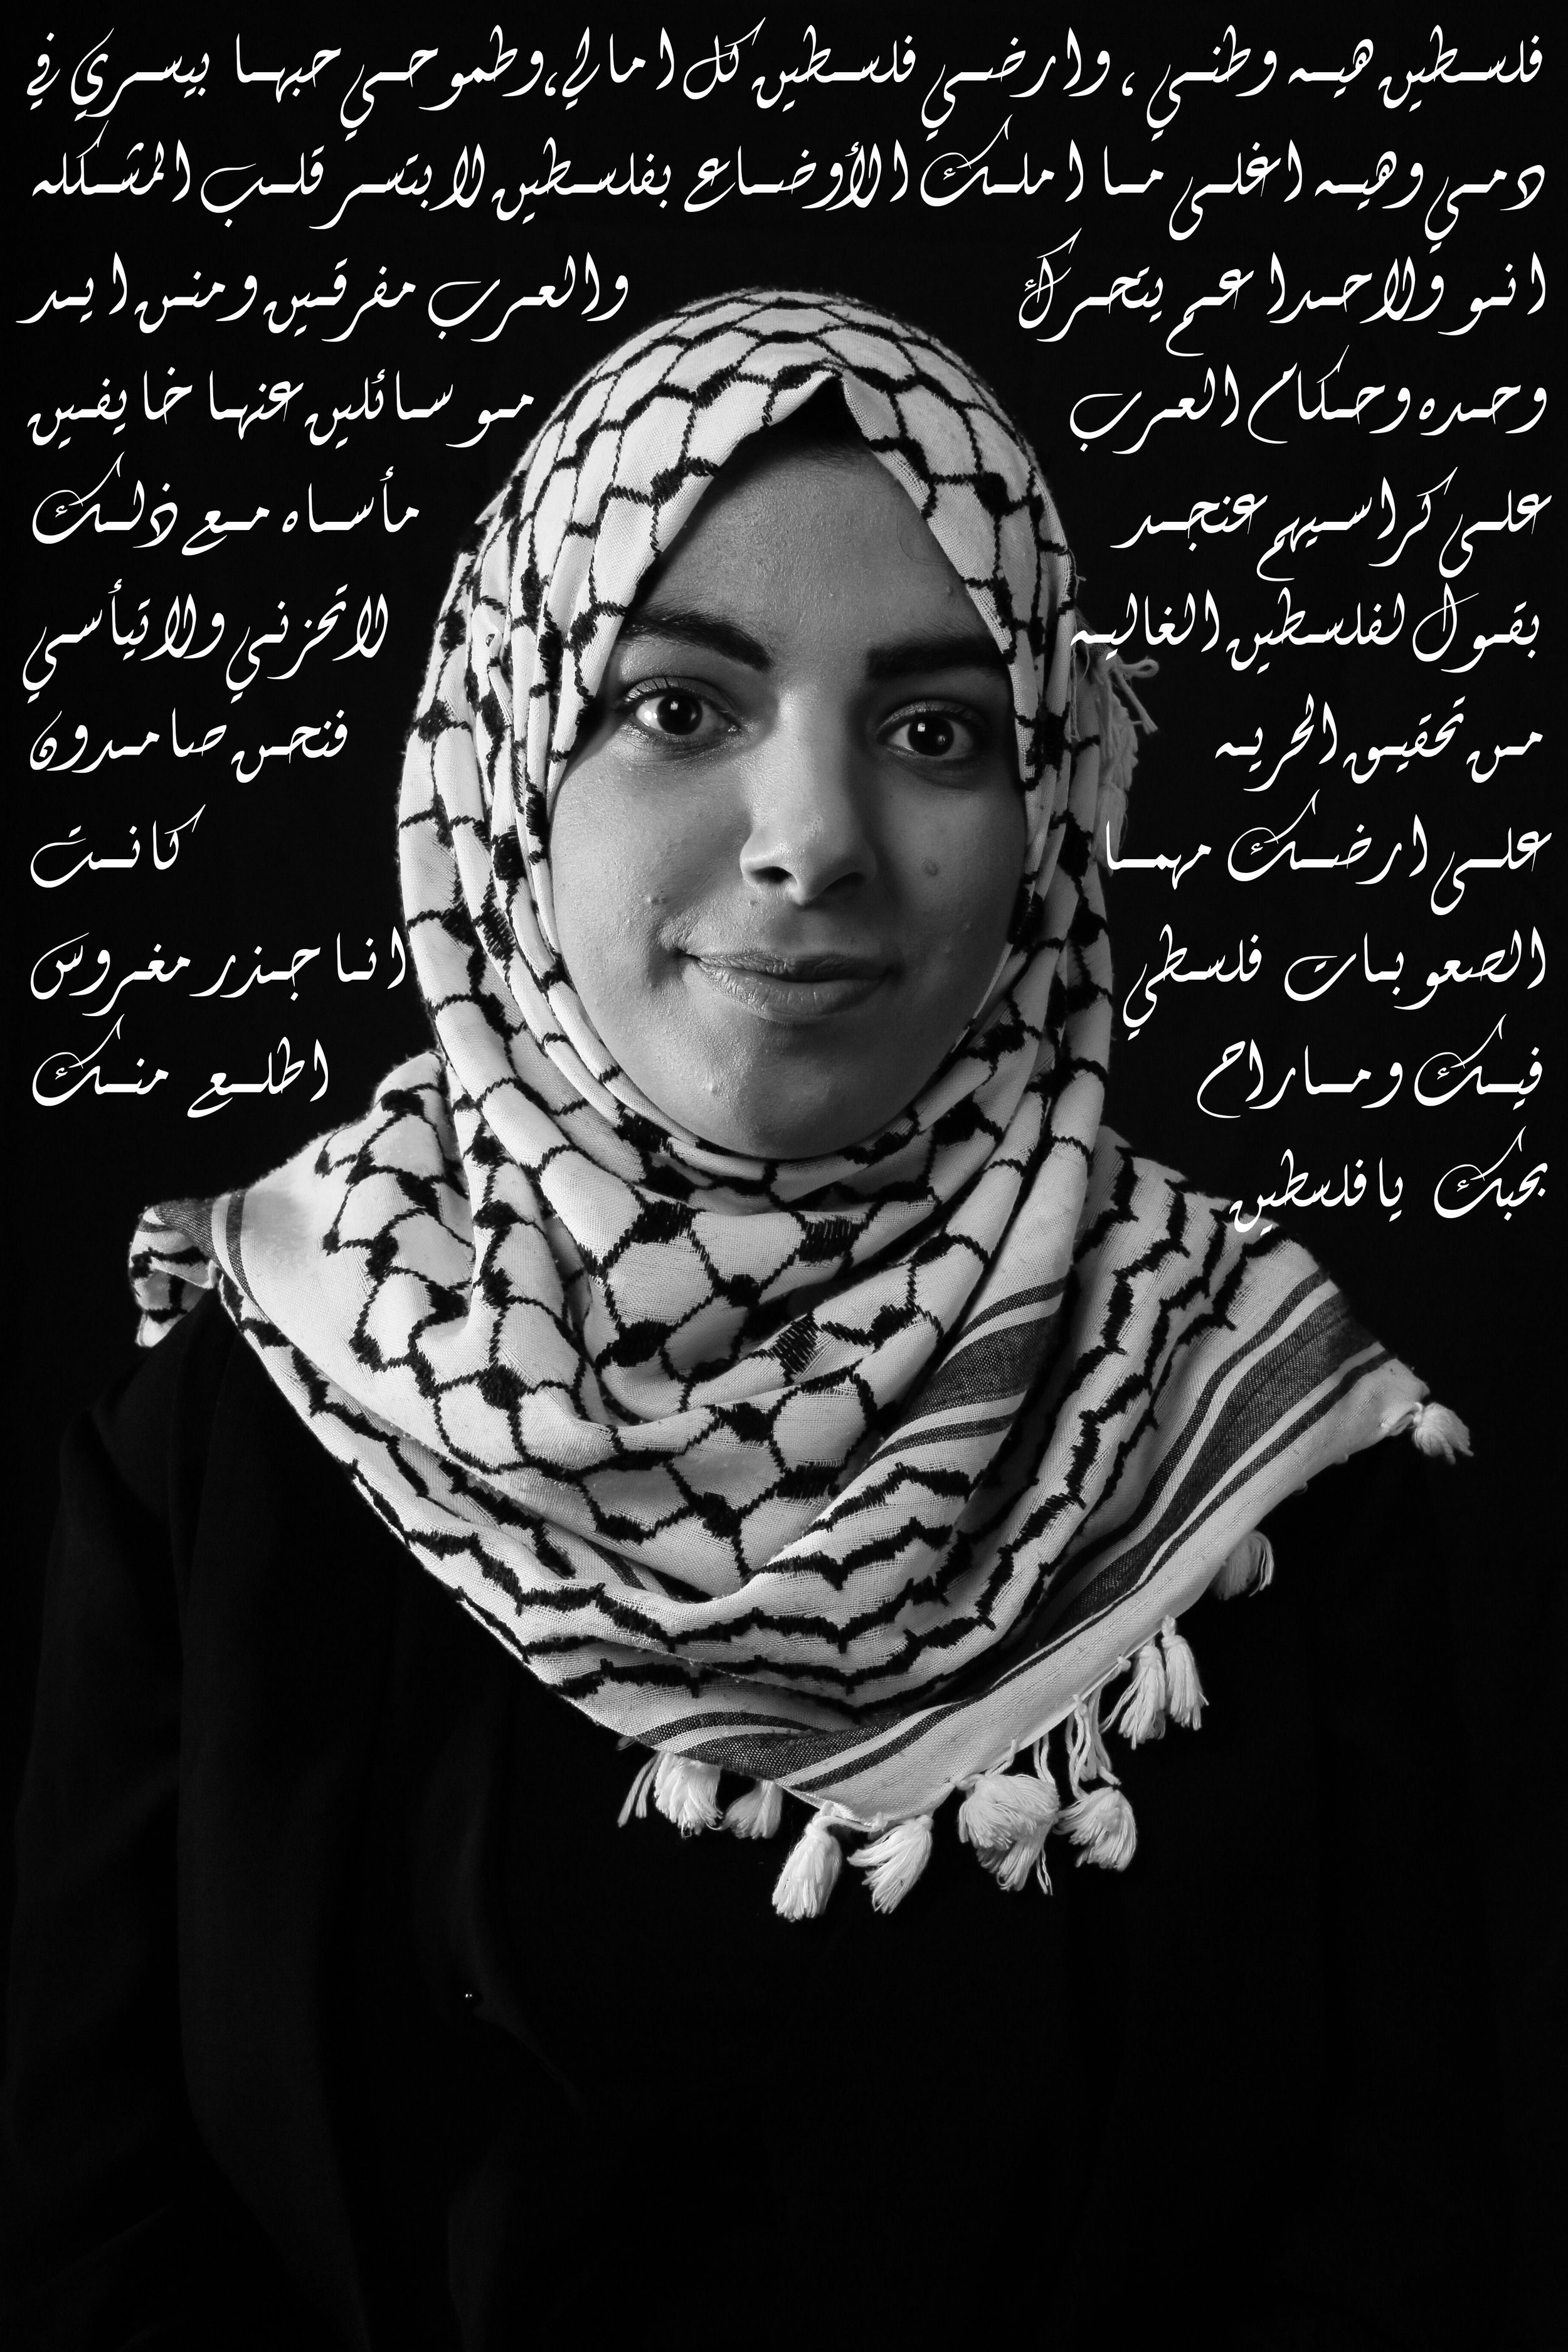 """""""Palestine... Palestine is my country and homeland. Palestine is all my hope and aspirations, Palestine is my mother and my father, And my heart is attached to it, And my love to Palestine flows in my blood, And it is the most valuable thing that I own. Obviously, what is happening in Palestine doesn't make anyone happy, But, the problem is no one is moving, No one is caring, And all Arabs are separated and are not supporting each other, And the Arab leaders are not caring about Palestine at all and are only caring about their leadership, but, with all that I tell dear Palestine: Don't be upset and don't lose hope from achieving your dream which is freedom. We are steadfast in your land Determined to achieve freedom, with all difficulties. And talking about me: I am a root planted in your land of Palestine and no one can ever destroy my root. I love you Palestine."""""""